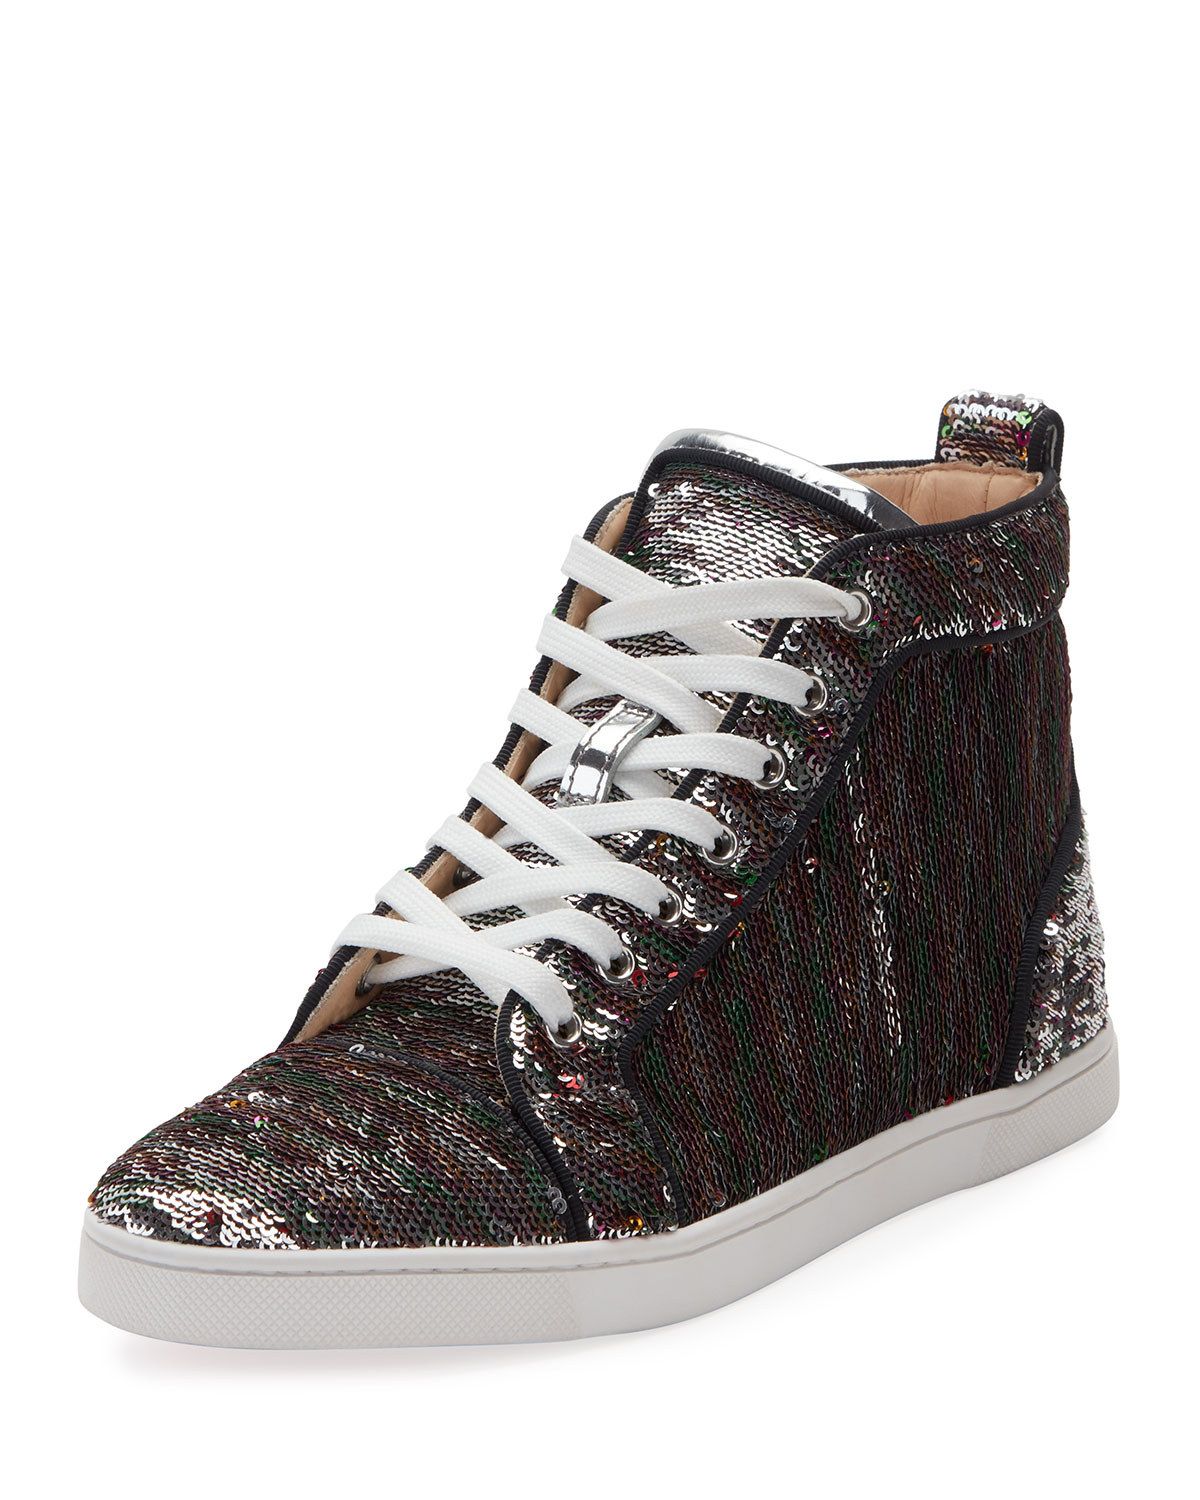 f86294ee4d02 Christian Louboutin Bip Bip Sequined Red Sole High-Top Sneaker ...